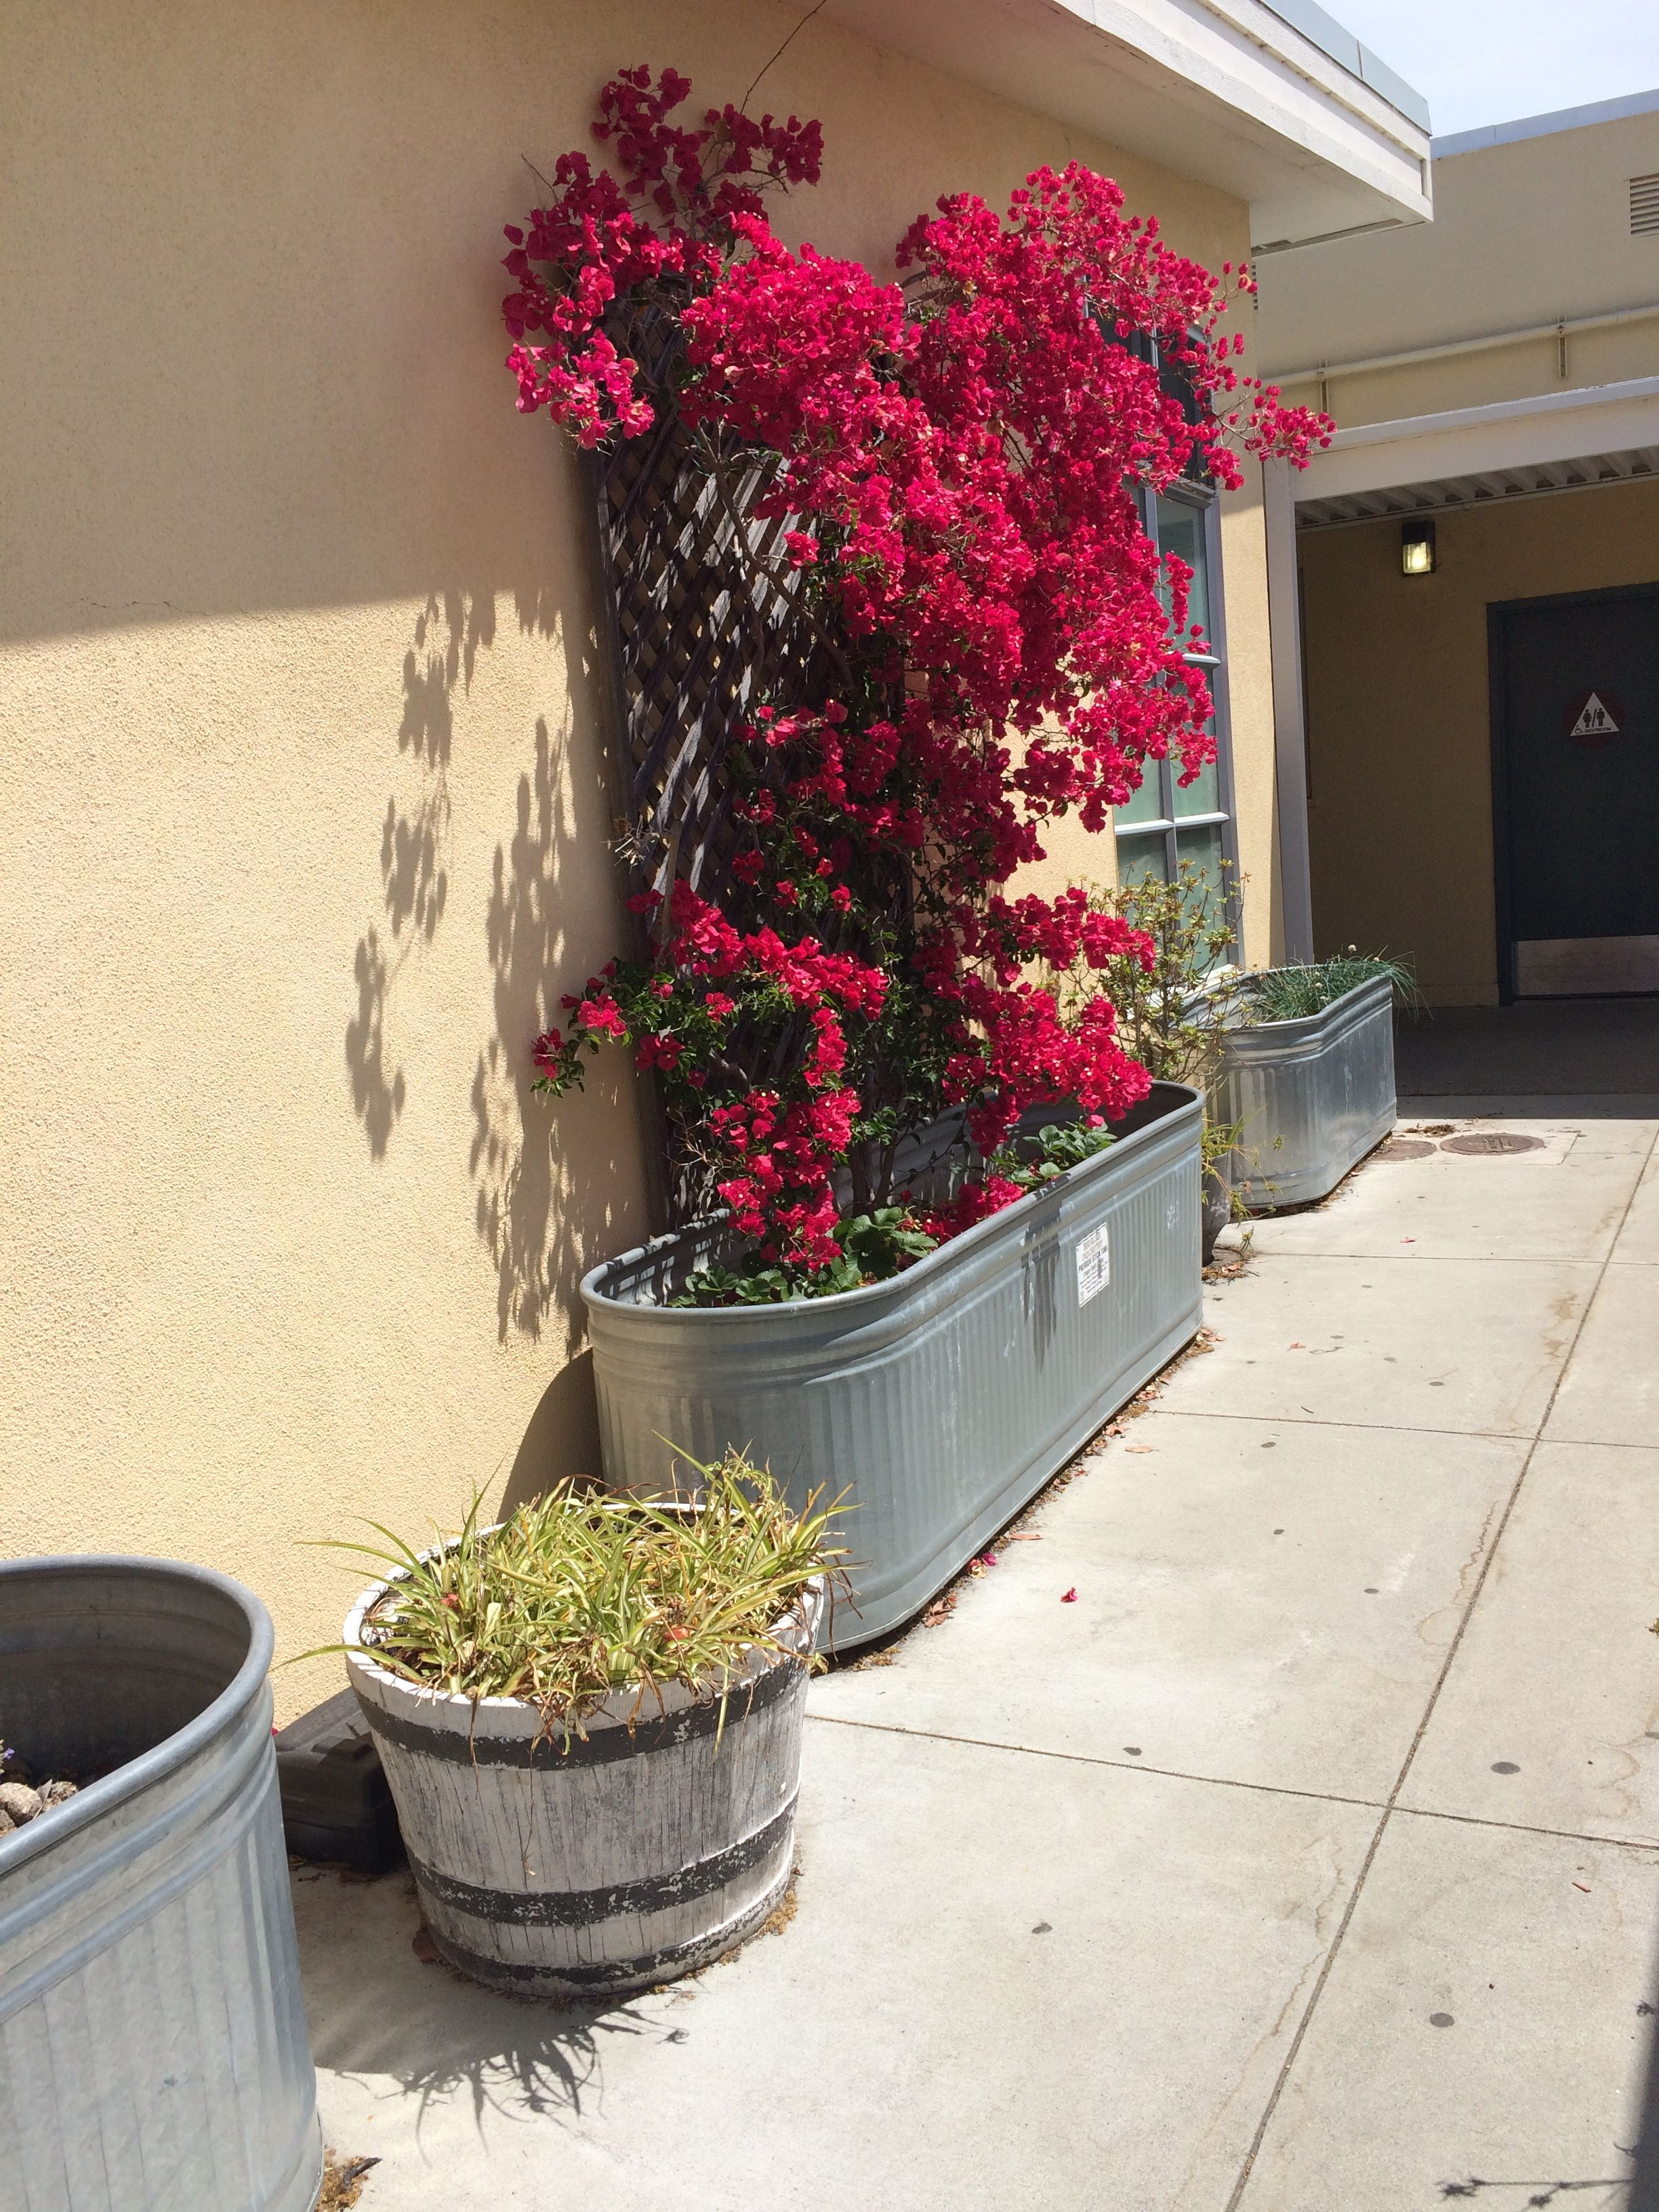 Ahhh Yes Bougainvillea Also Note The Planter It S In And The Wine Barrel Planter Whiskey Barrel Planter Barrel Planter Indoor Plants